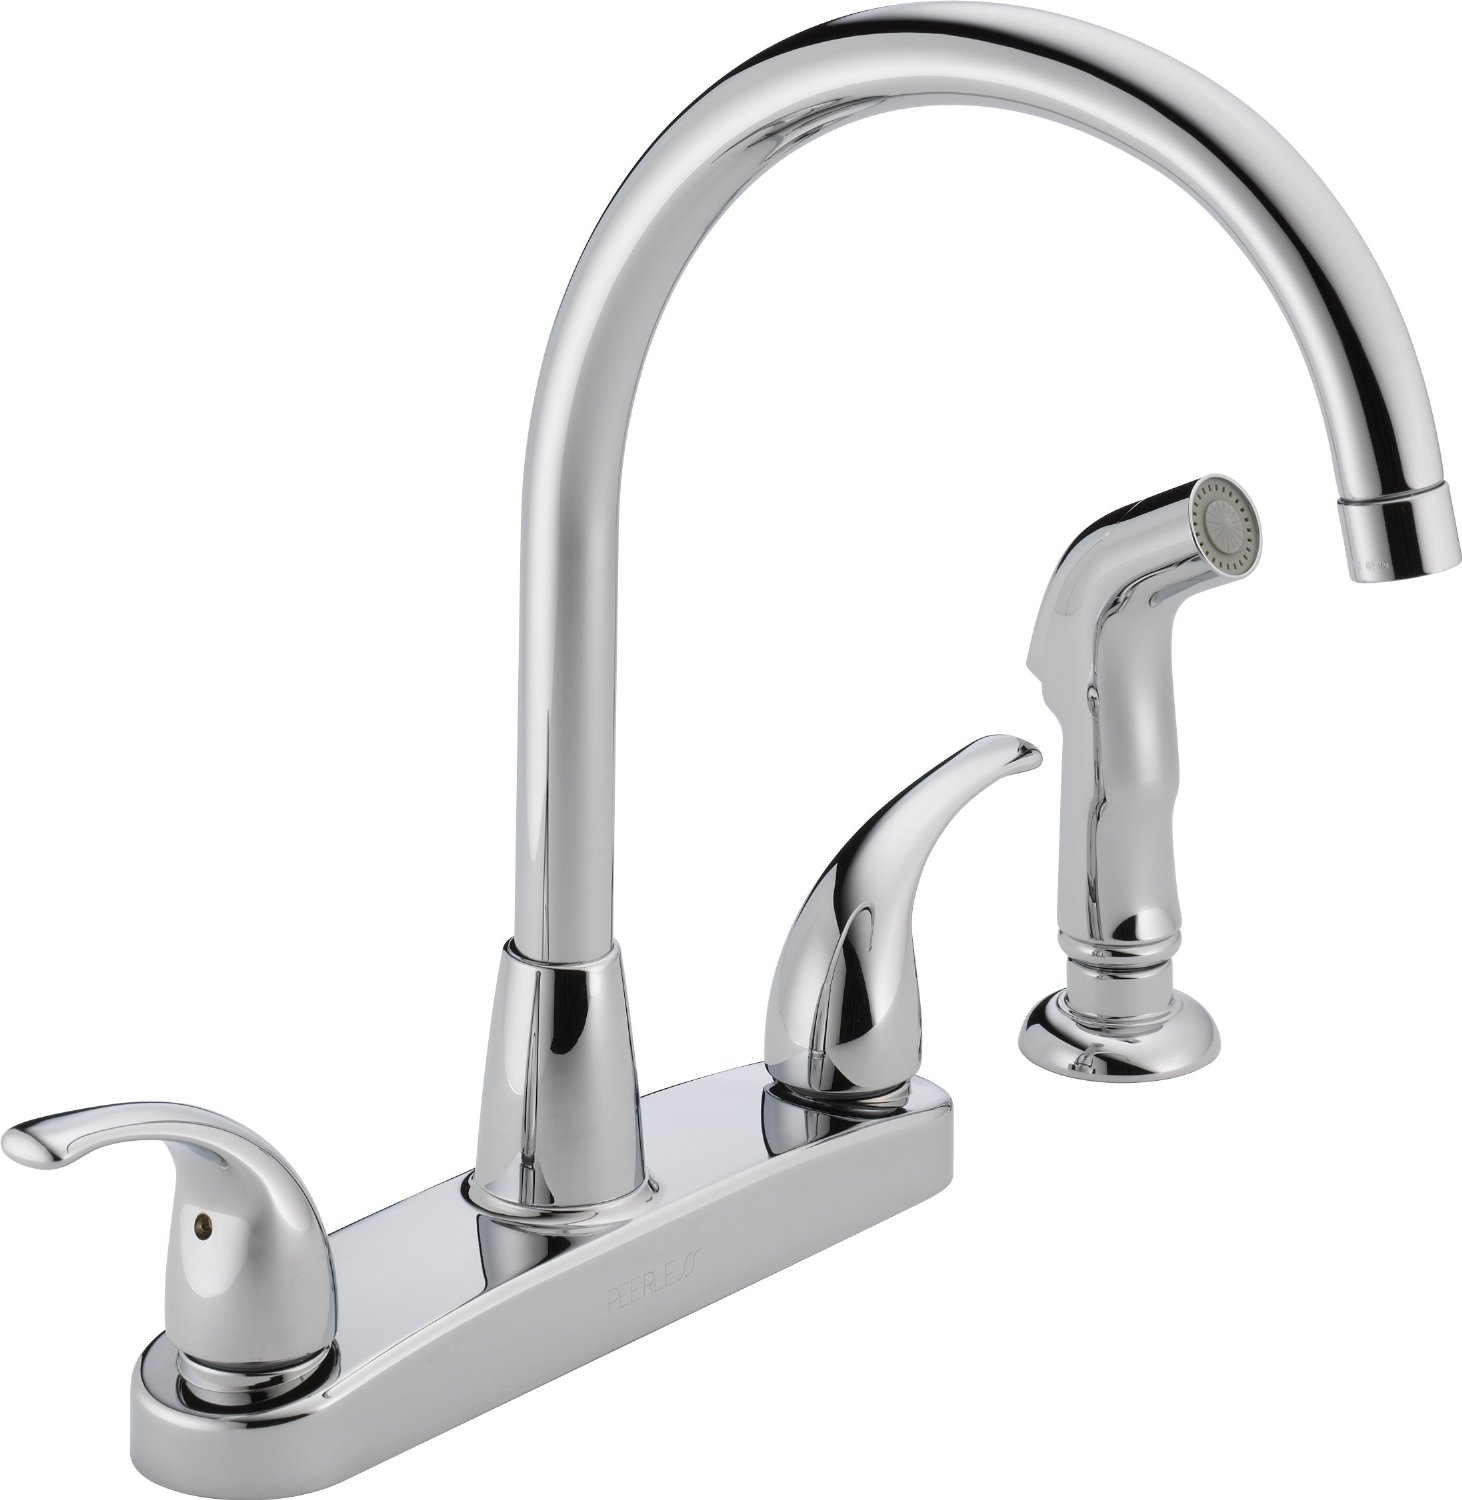 How Fix Leaking Delta Kitchen Faucet With Hose